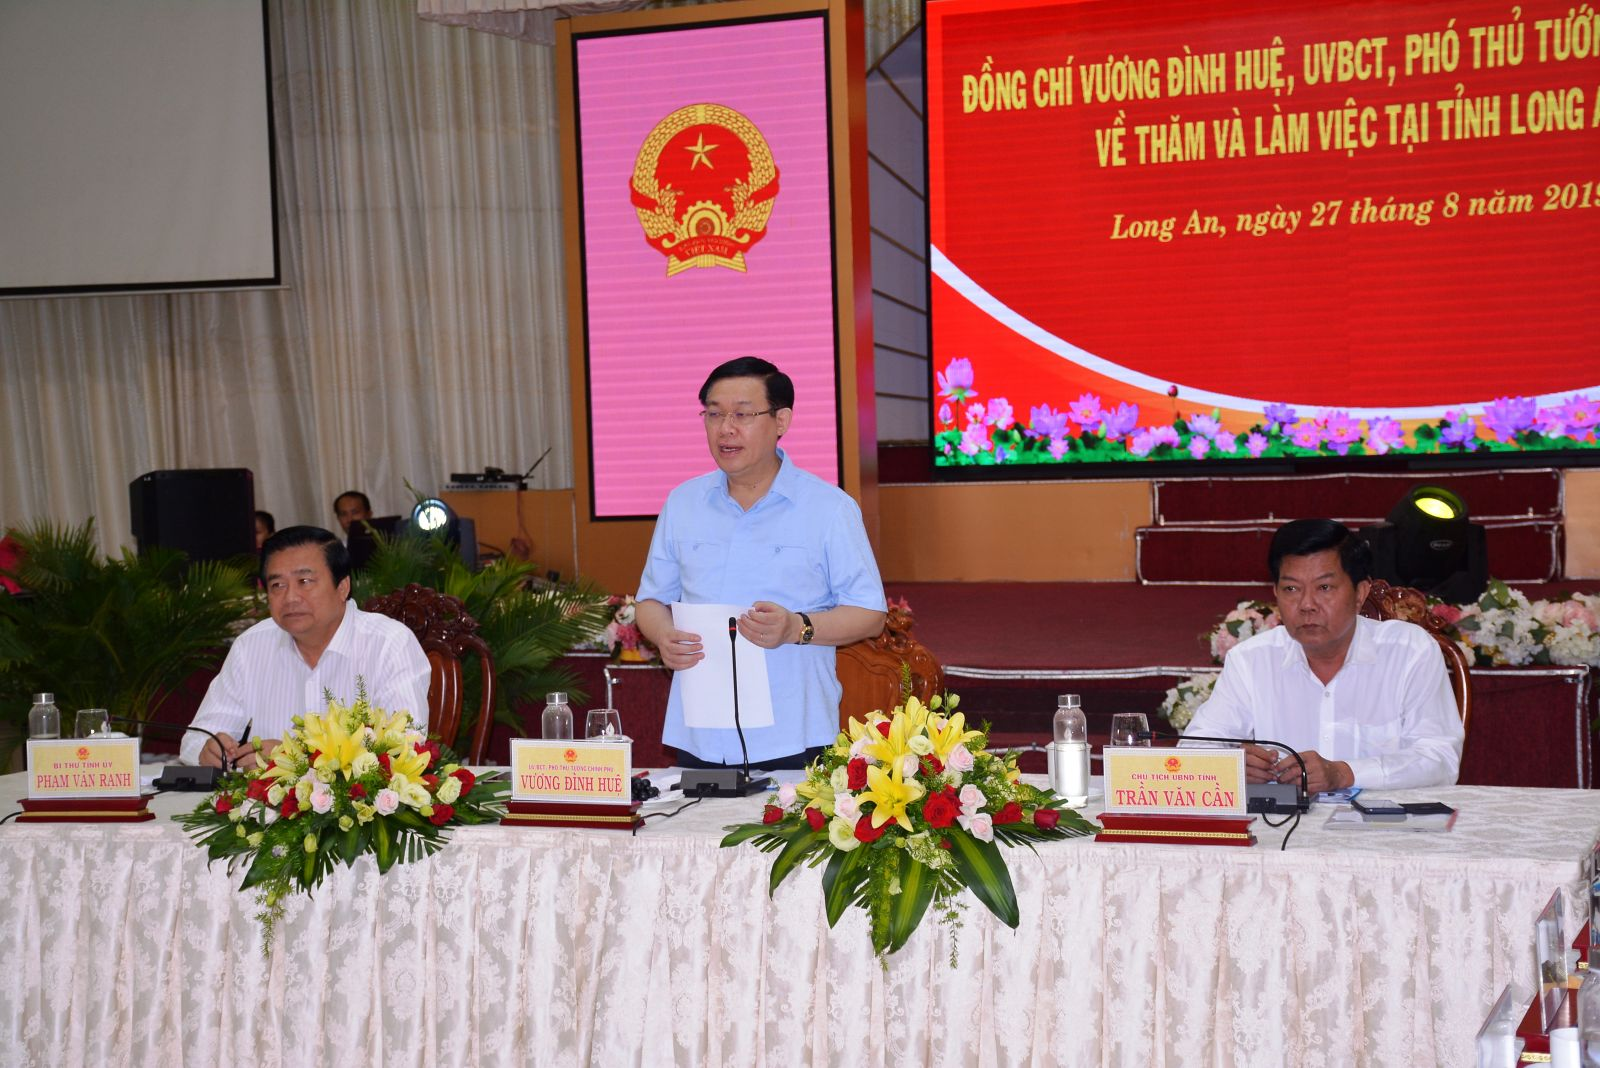 Deputy PM - Vuong Dinh Hue speaks at the conference